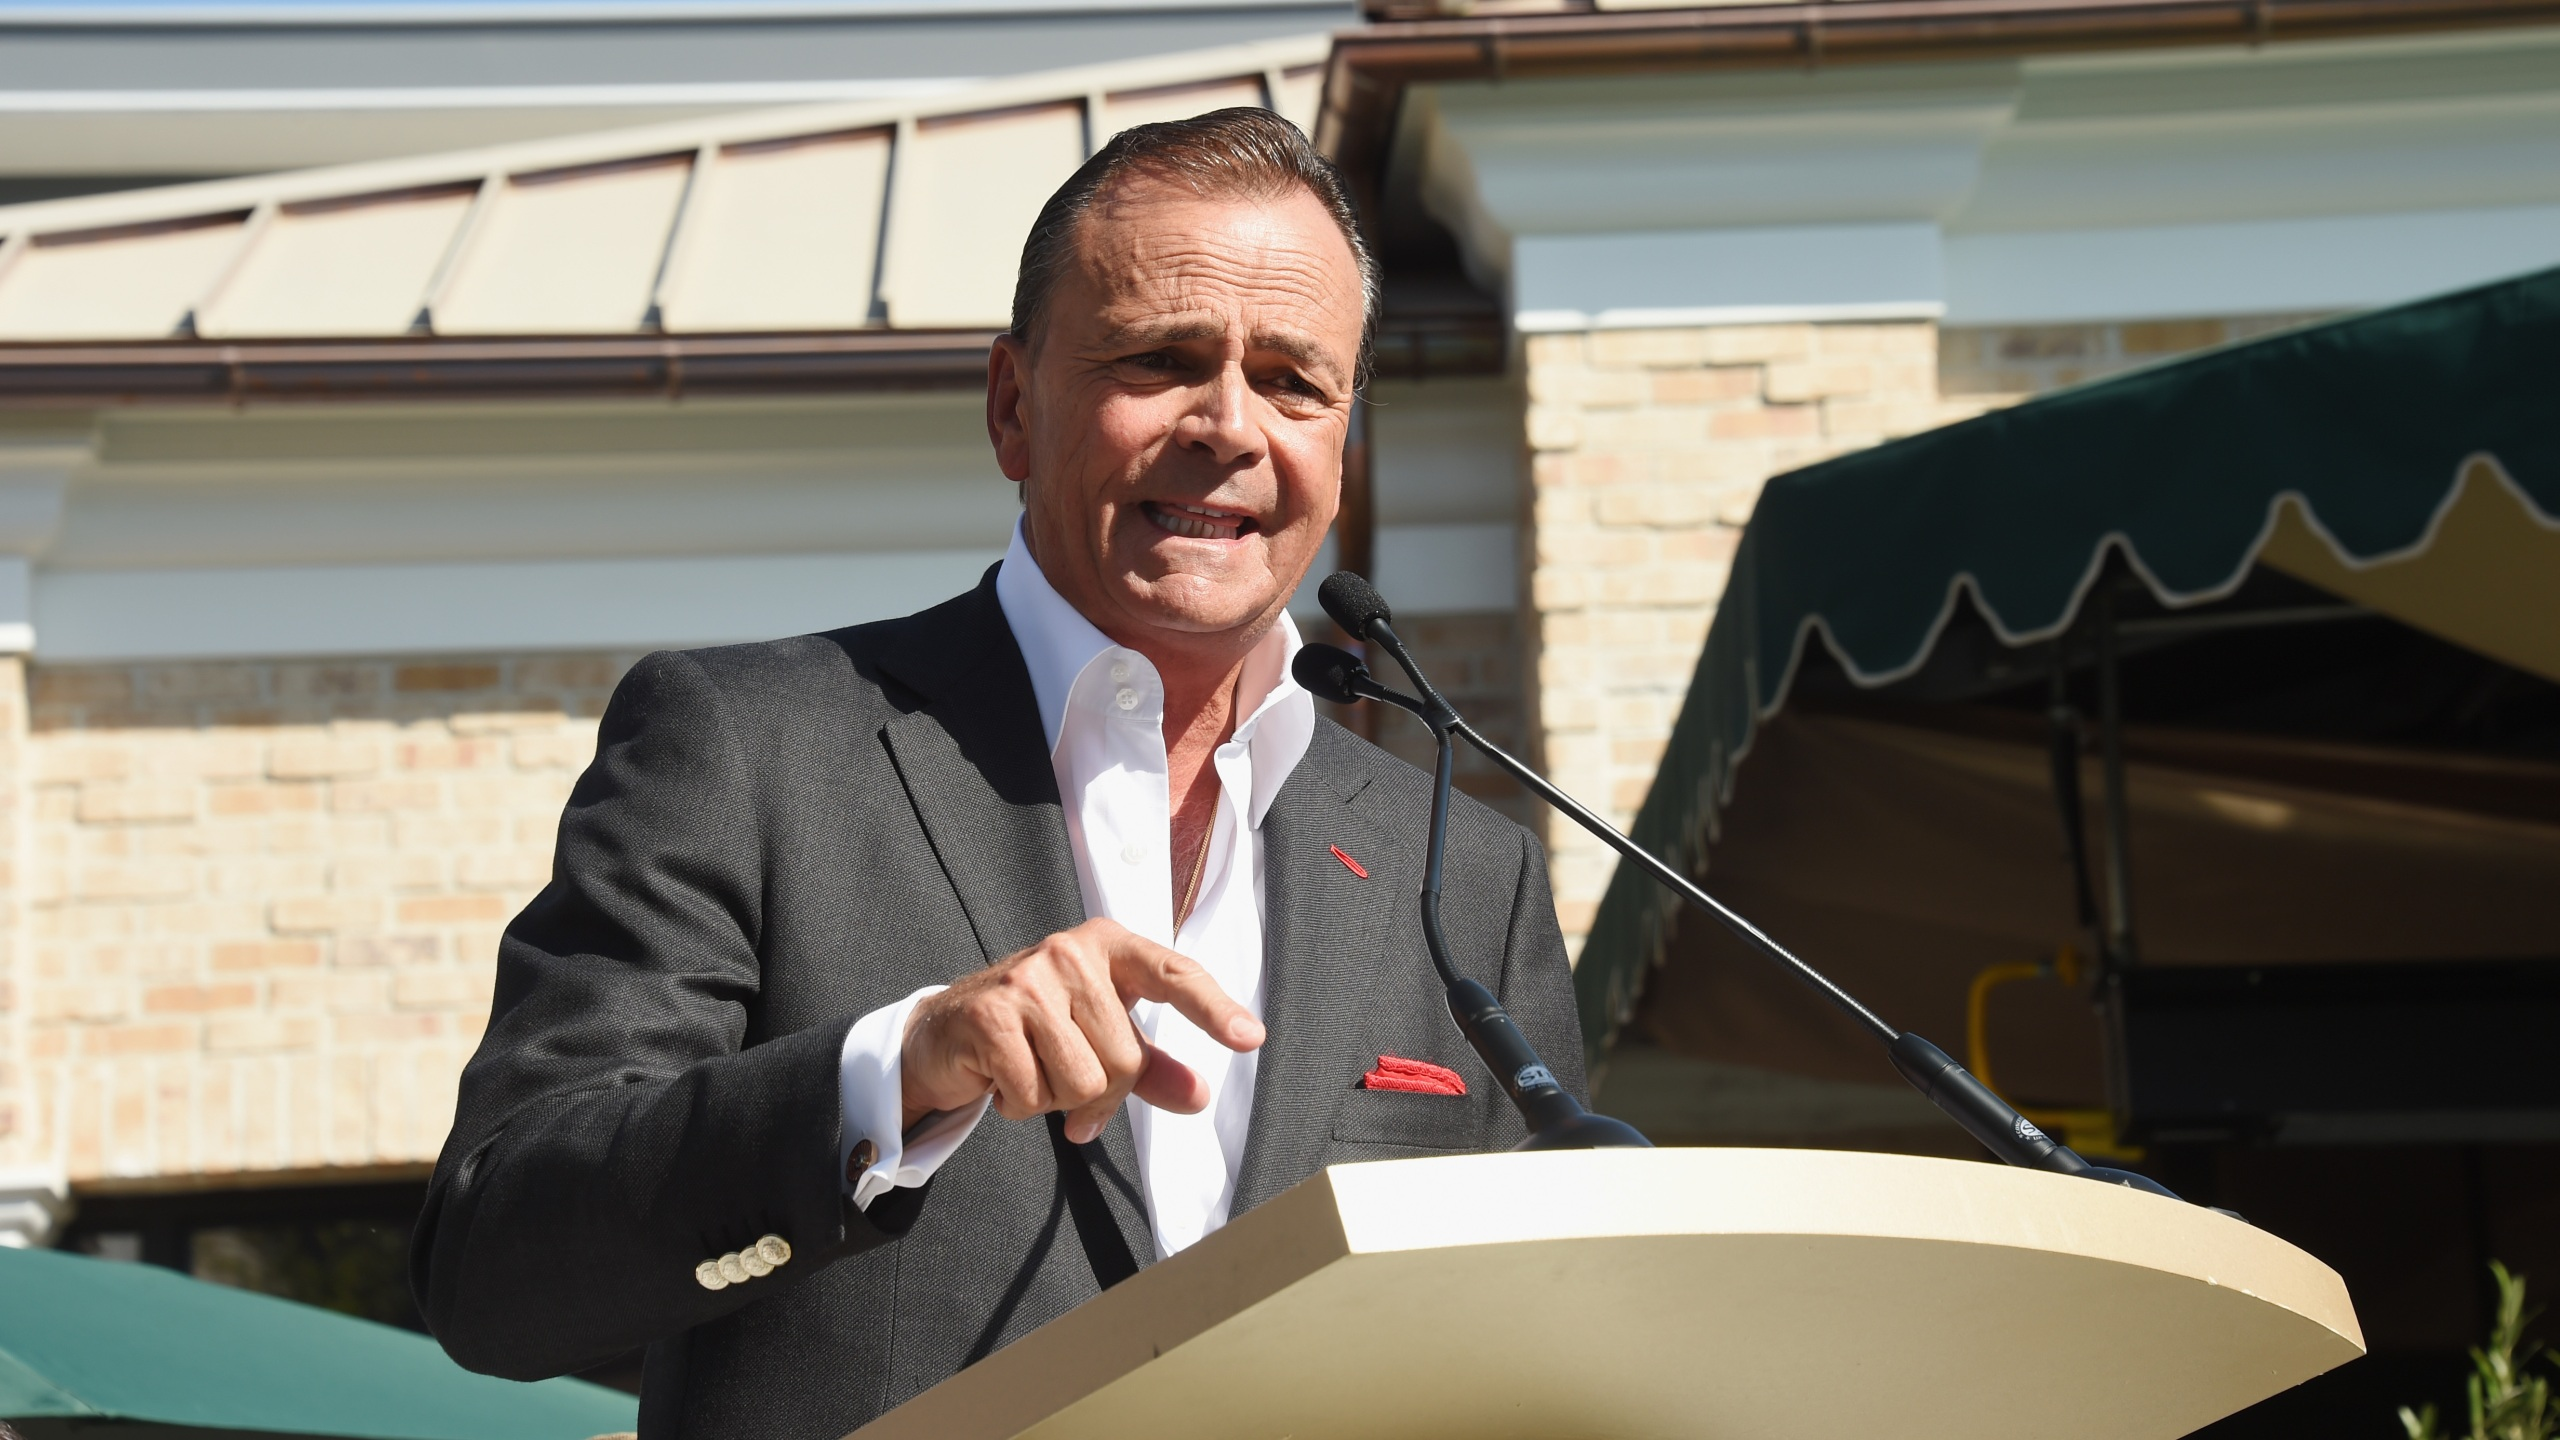 Developer Rick Caruso attends the Palisades Village grand opening private ribbon-cutting ceremony at Palisades Village on September 22, 2018 in Pacific Palisades. (Amanda Edwards/Getty Images)